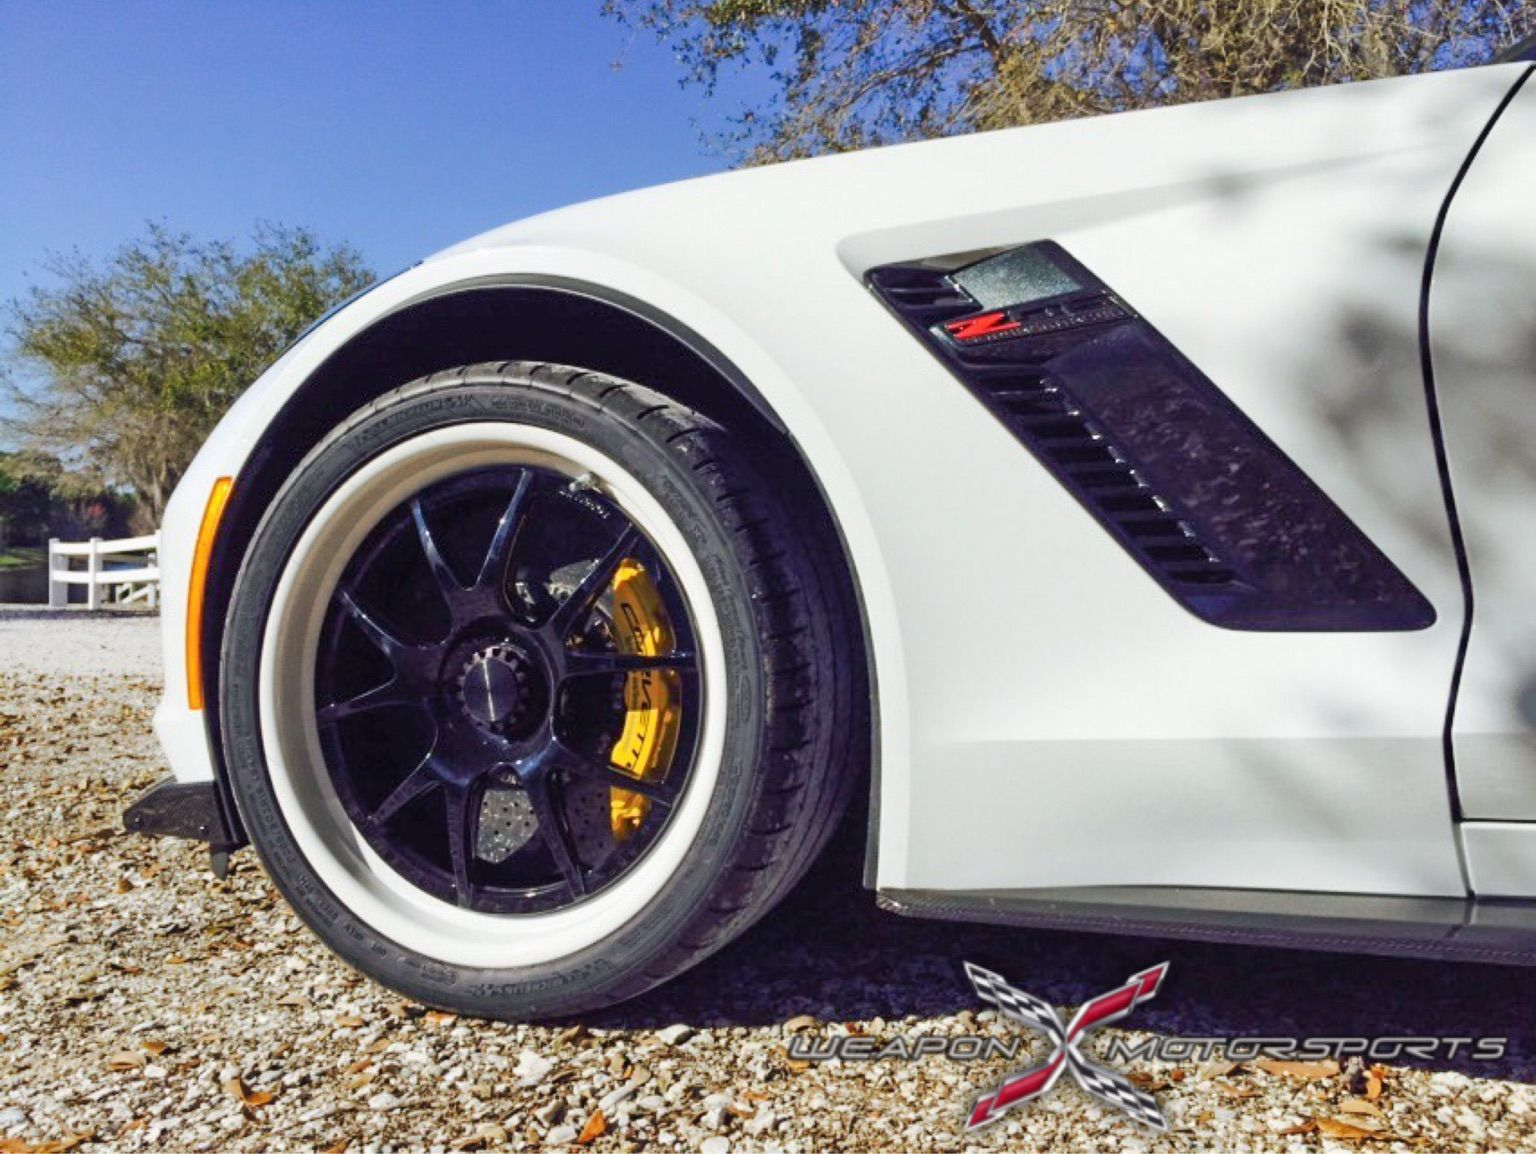 2015 Chevrolet Corvette Z06 | C7 Z06 Convertible on GA3R Center Locking Wheels